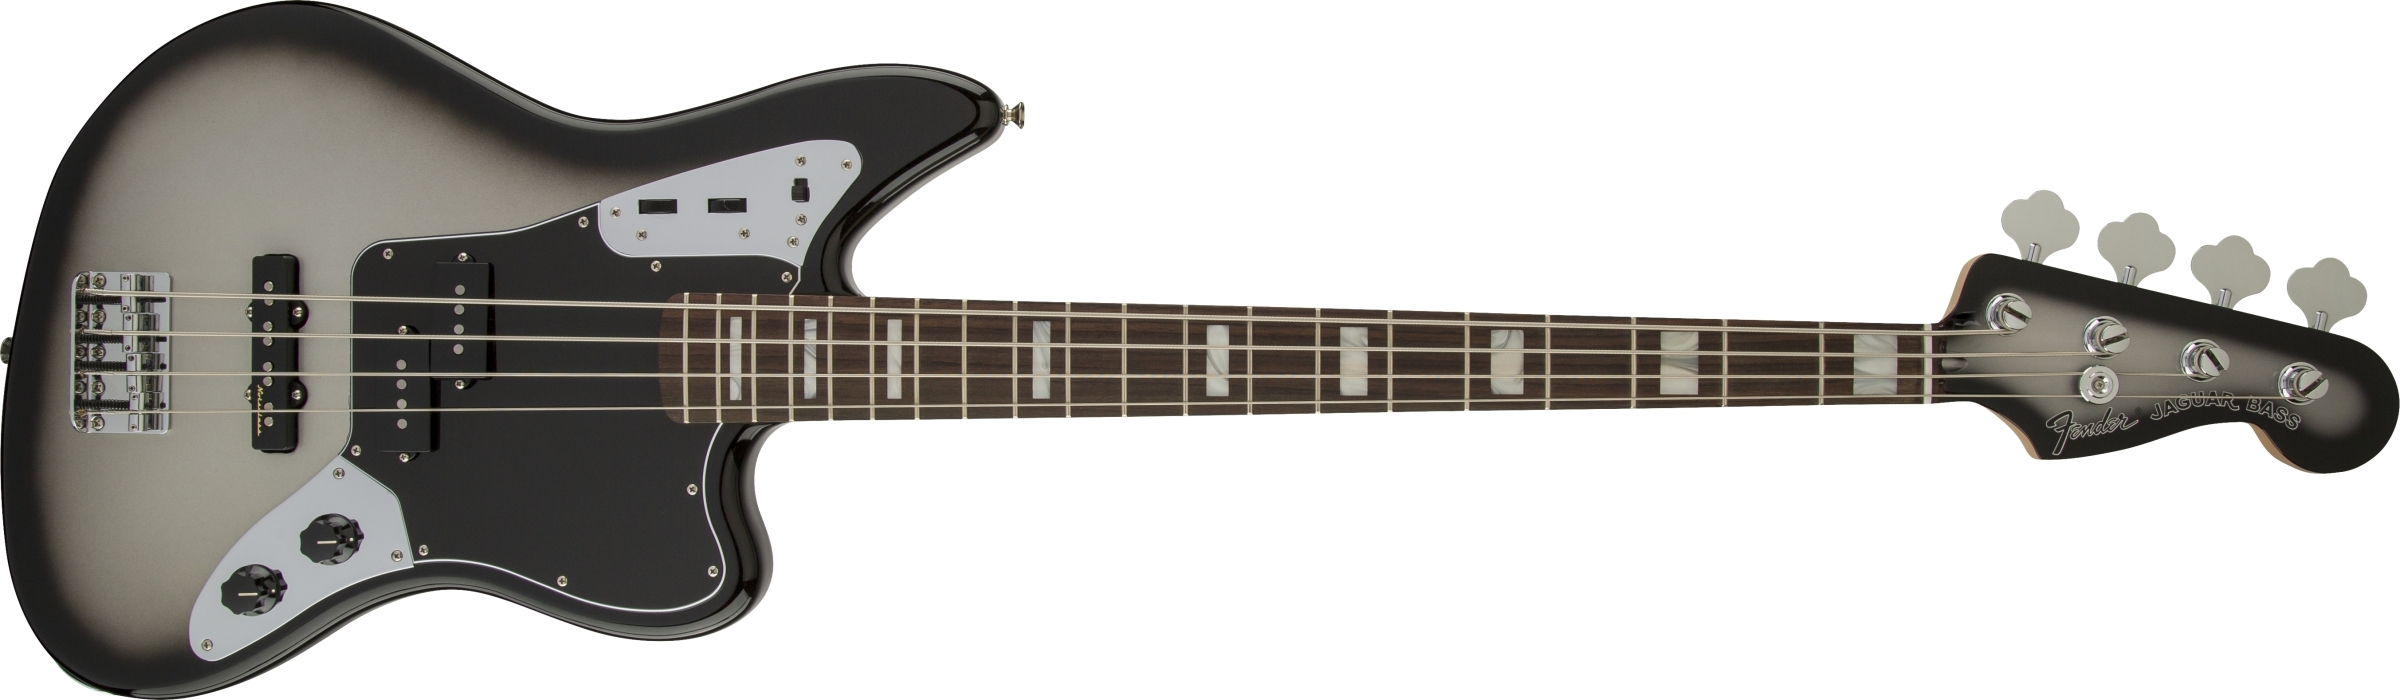 Jaguar Of Troy >> Troy Sanders Jaguar Bass Electric Basses